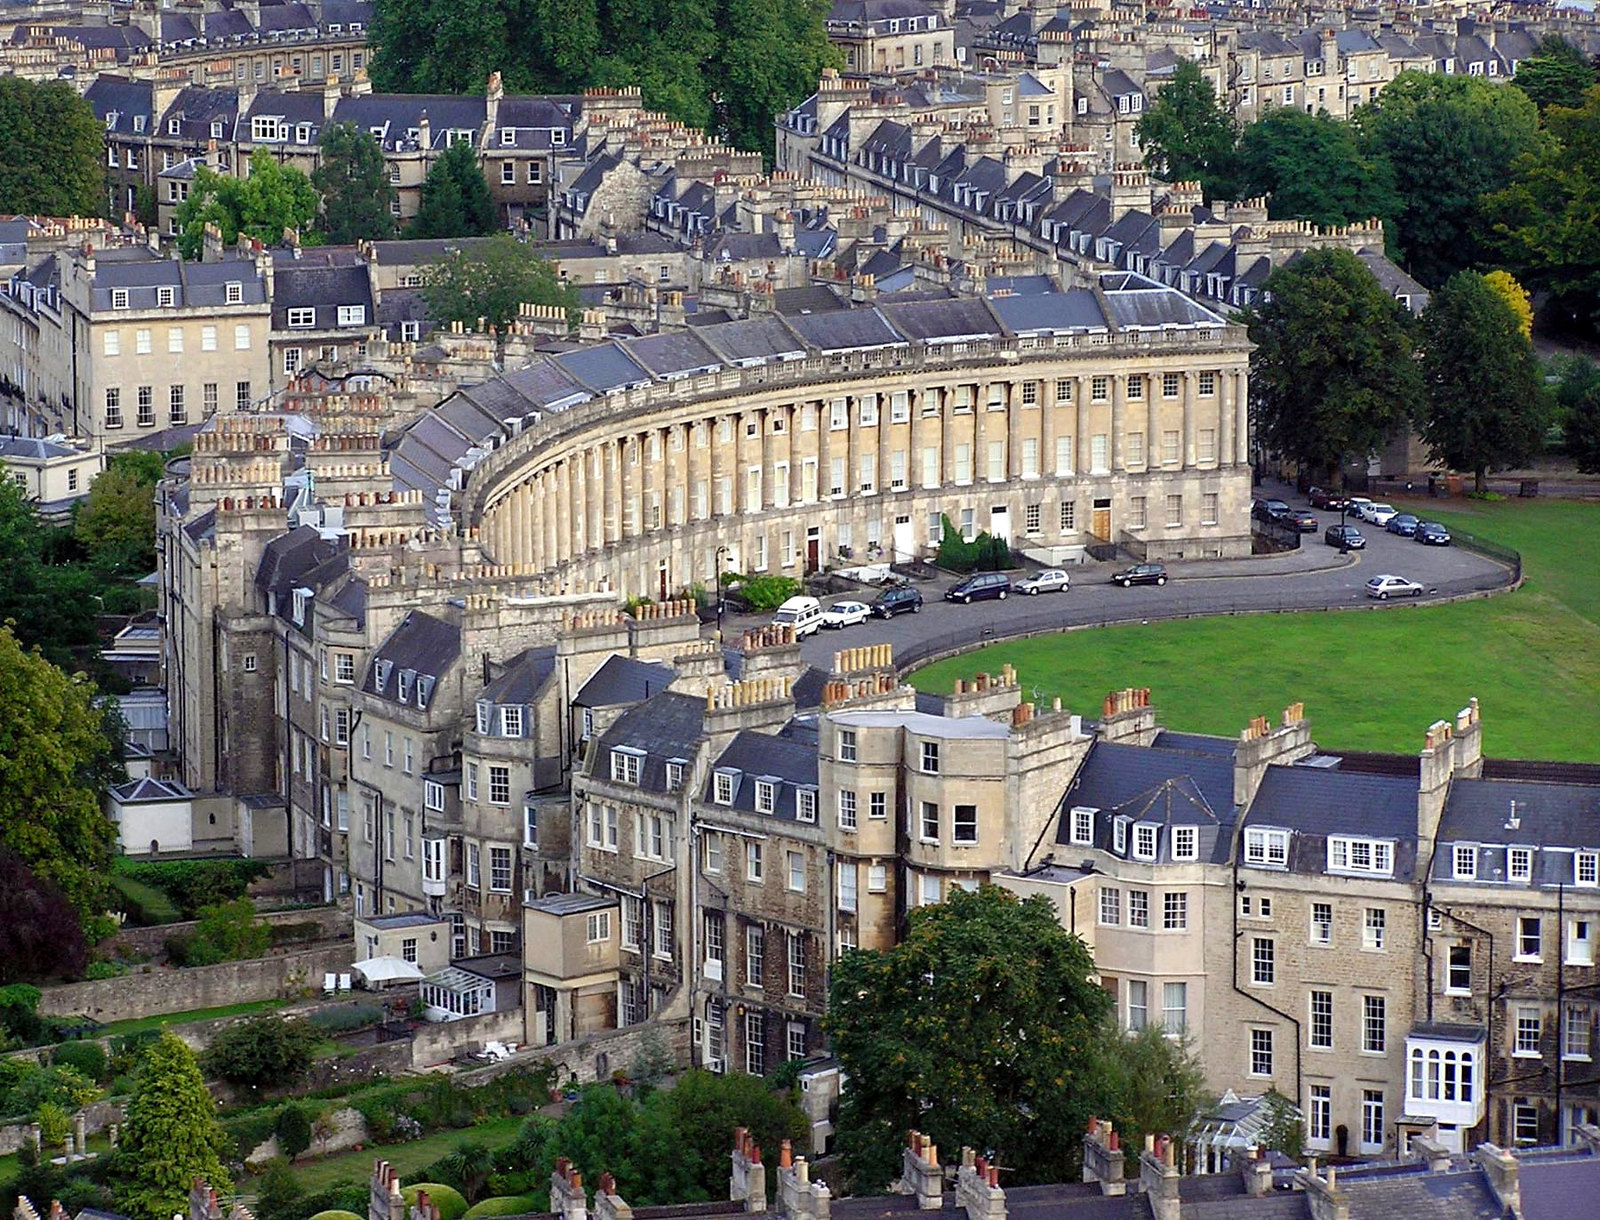 The Royal Crescent in the City of Bath